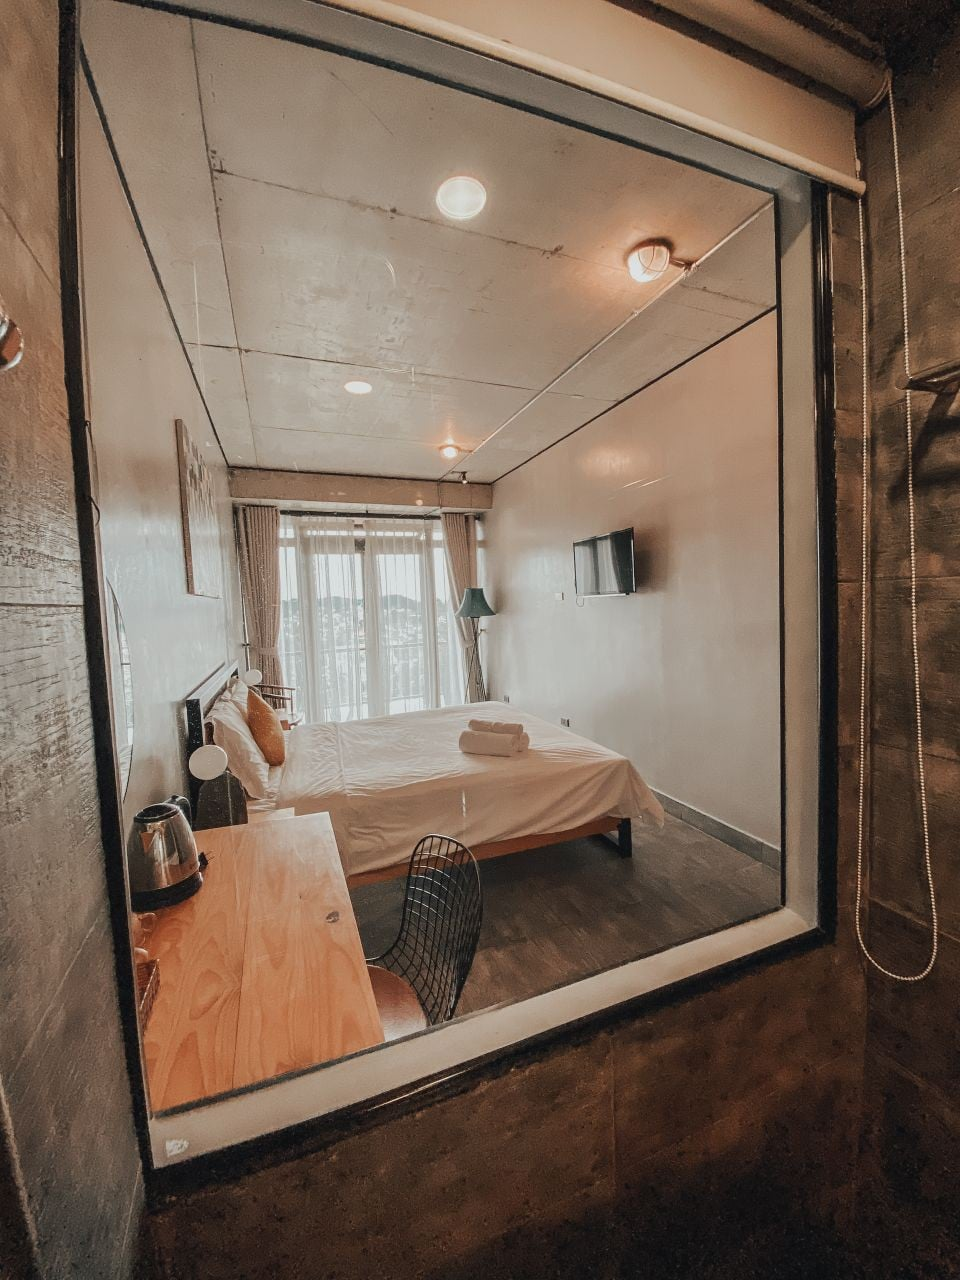 Deluxe Double Room at The Dalat Shelter